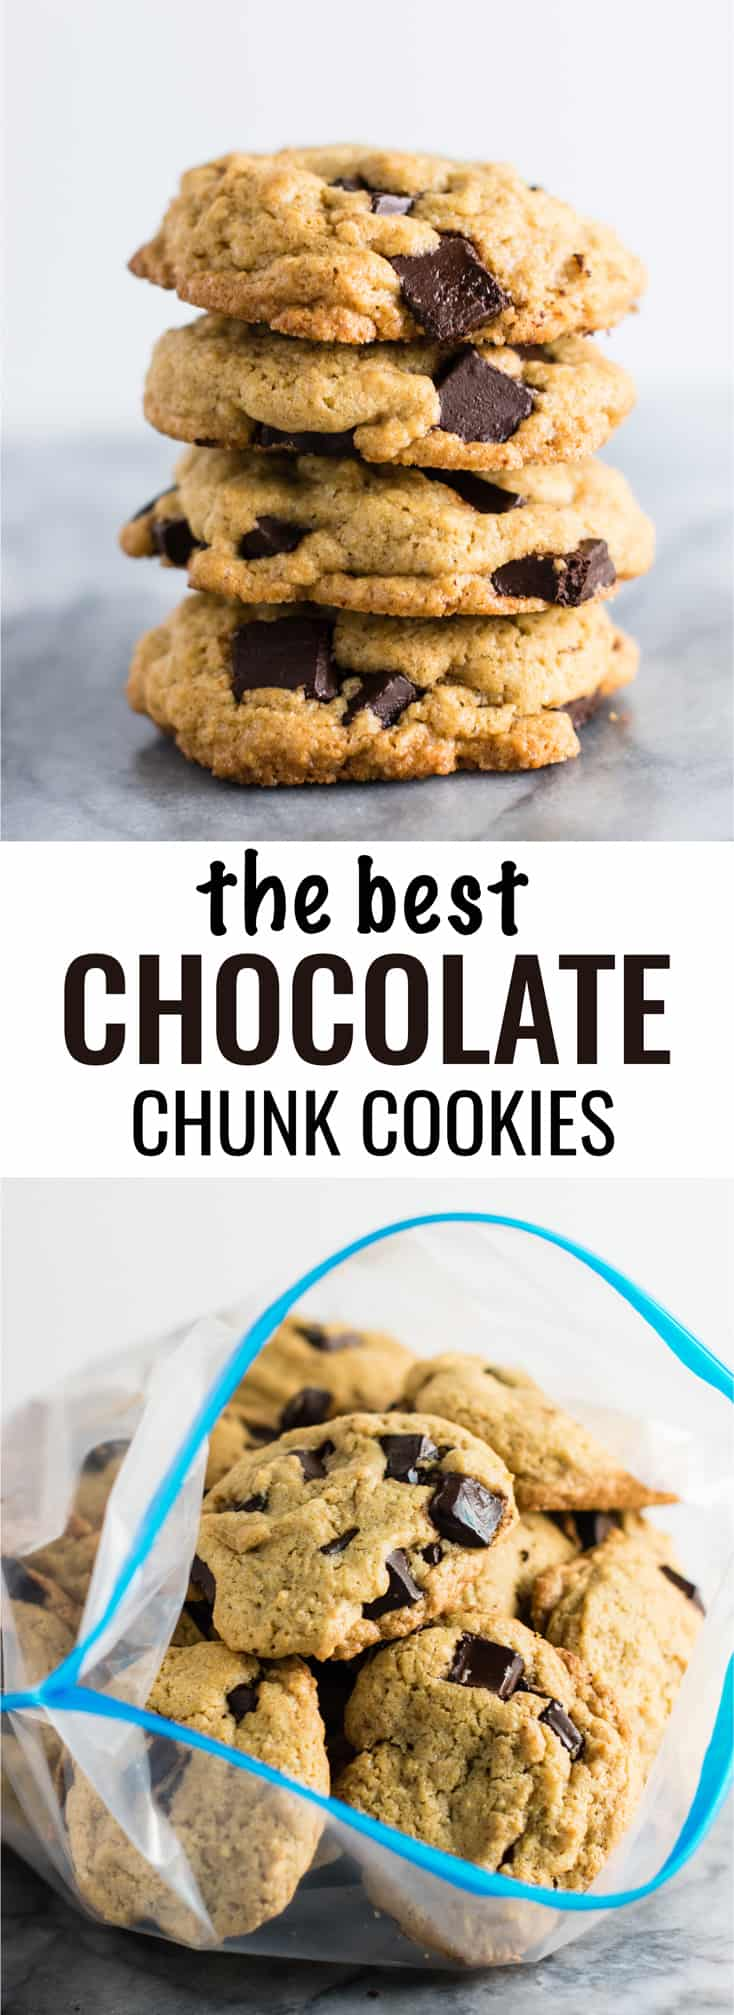 the BEST homemade chocolate chunk cookies! #cookies #chocolatechunk #desserts #dairyfree #wholewheat